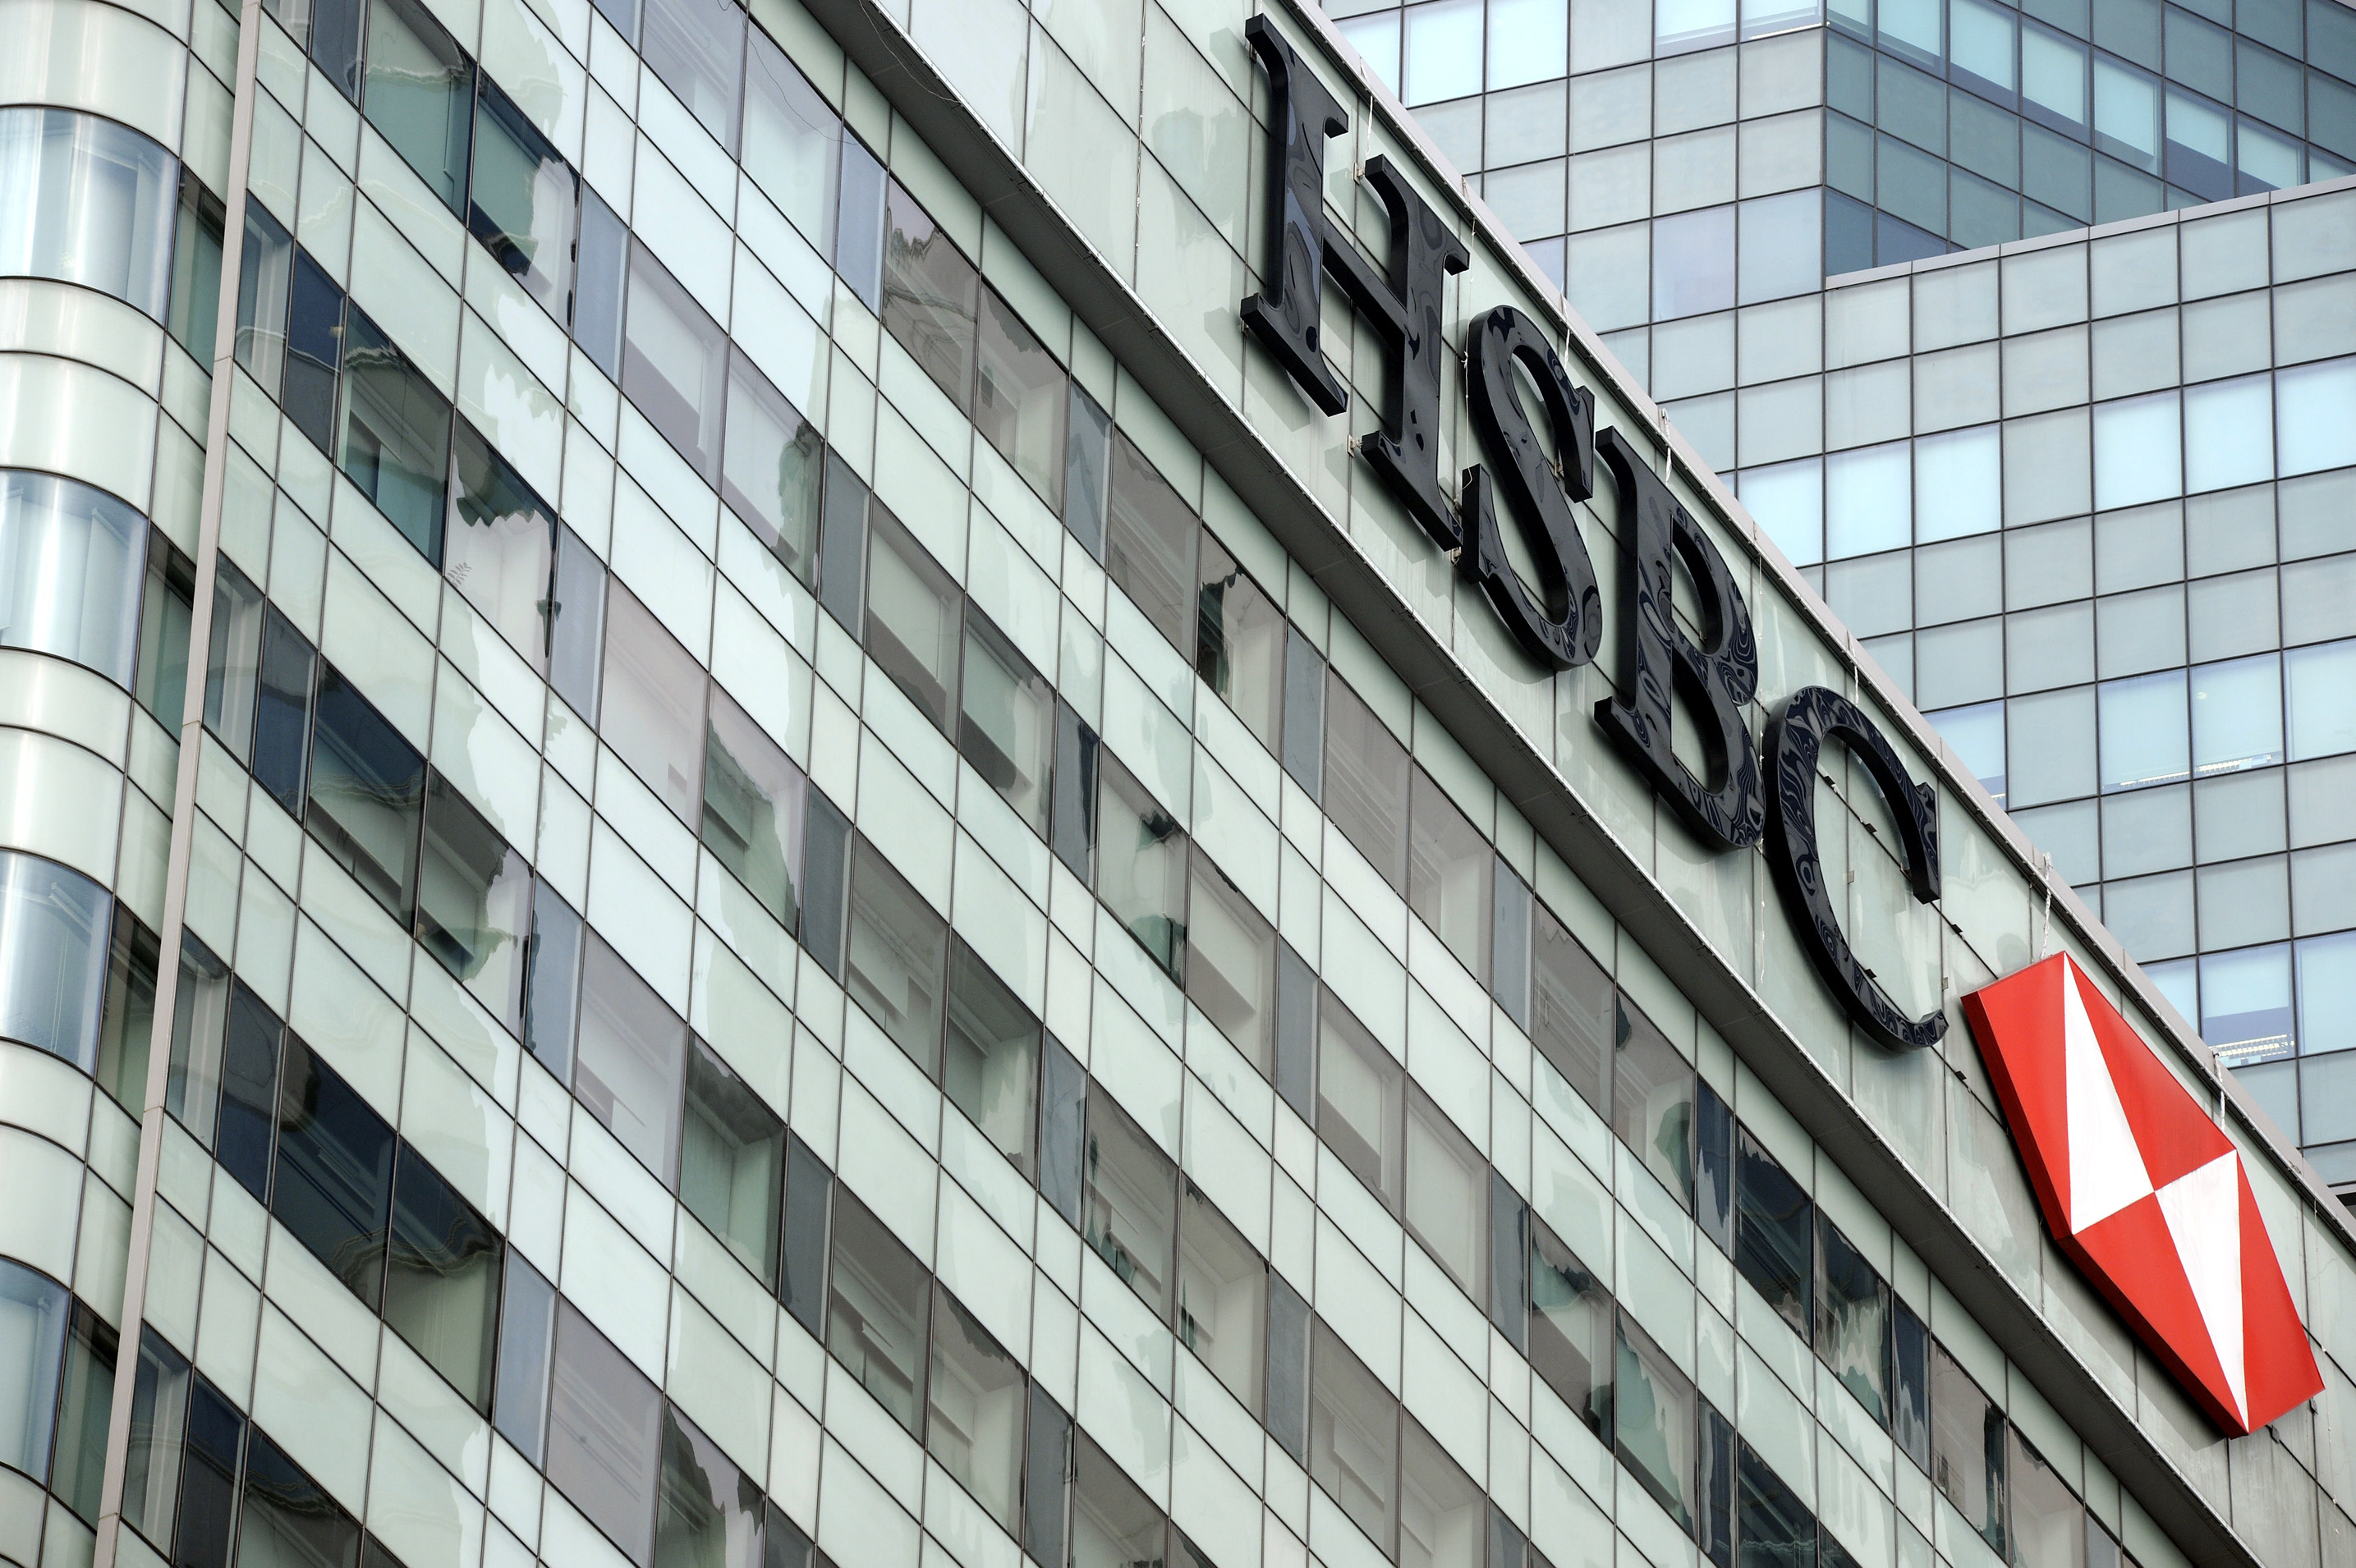 HSBC Awards Global Media Business to Omnicom's PHD – Adweek